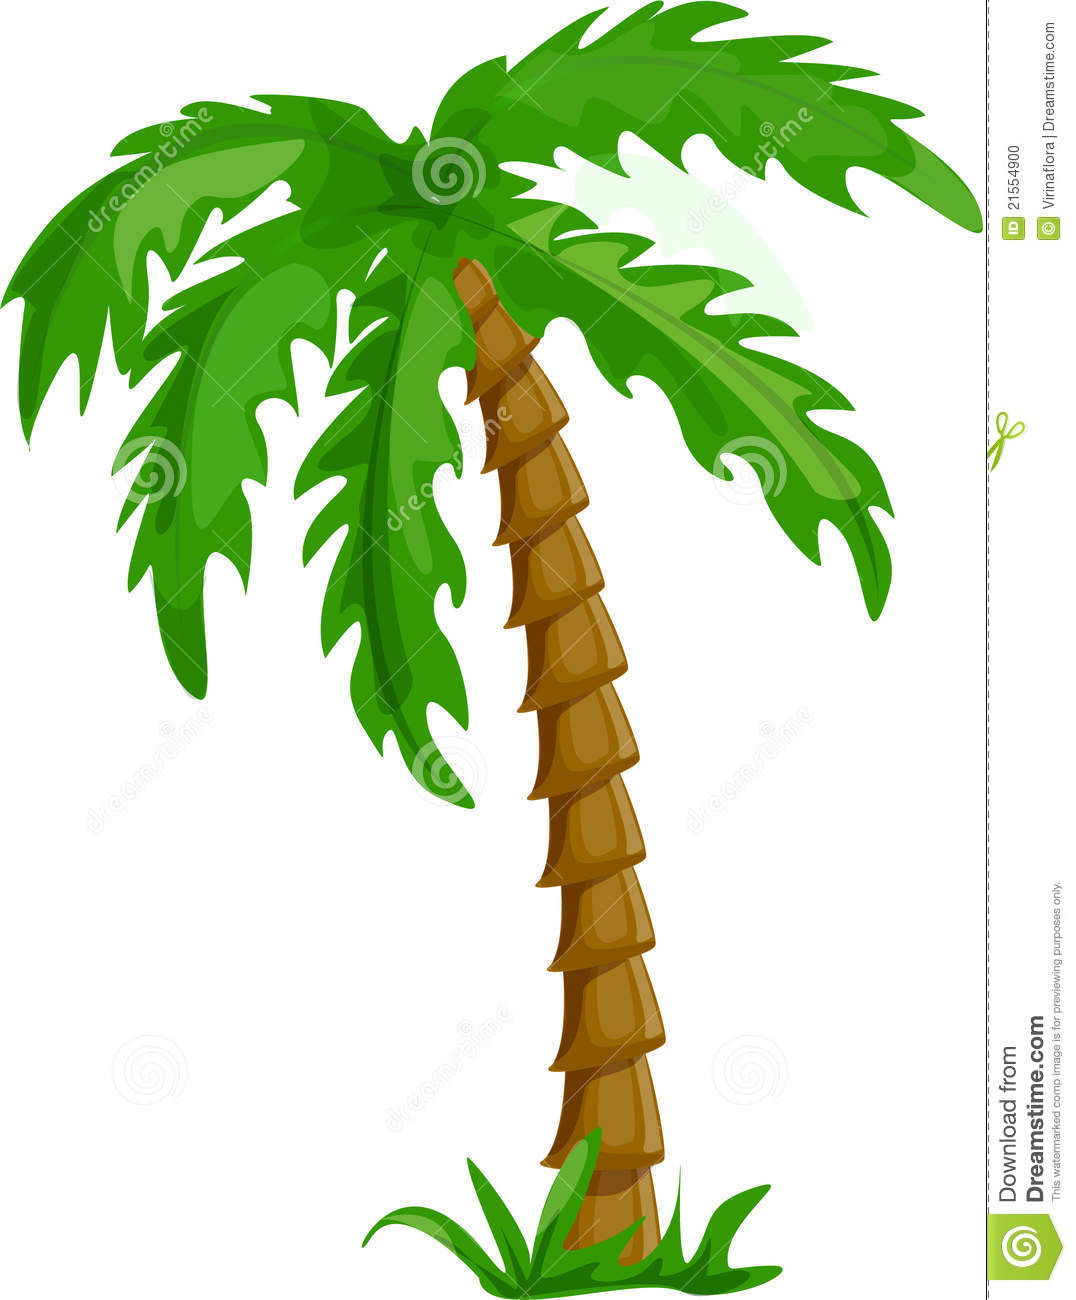 Palm Trees Clip Art Png Palm%20tree%20clipart%20no%